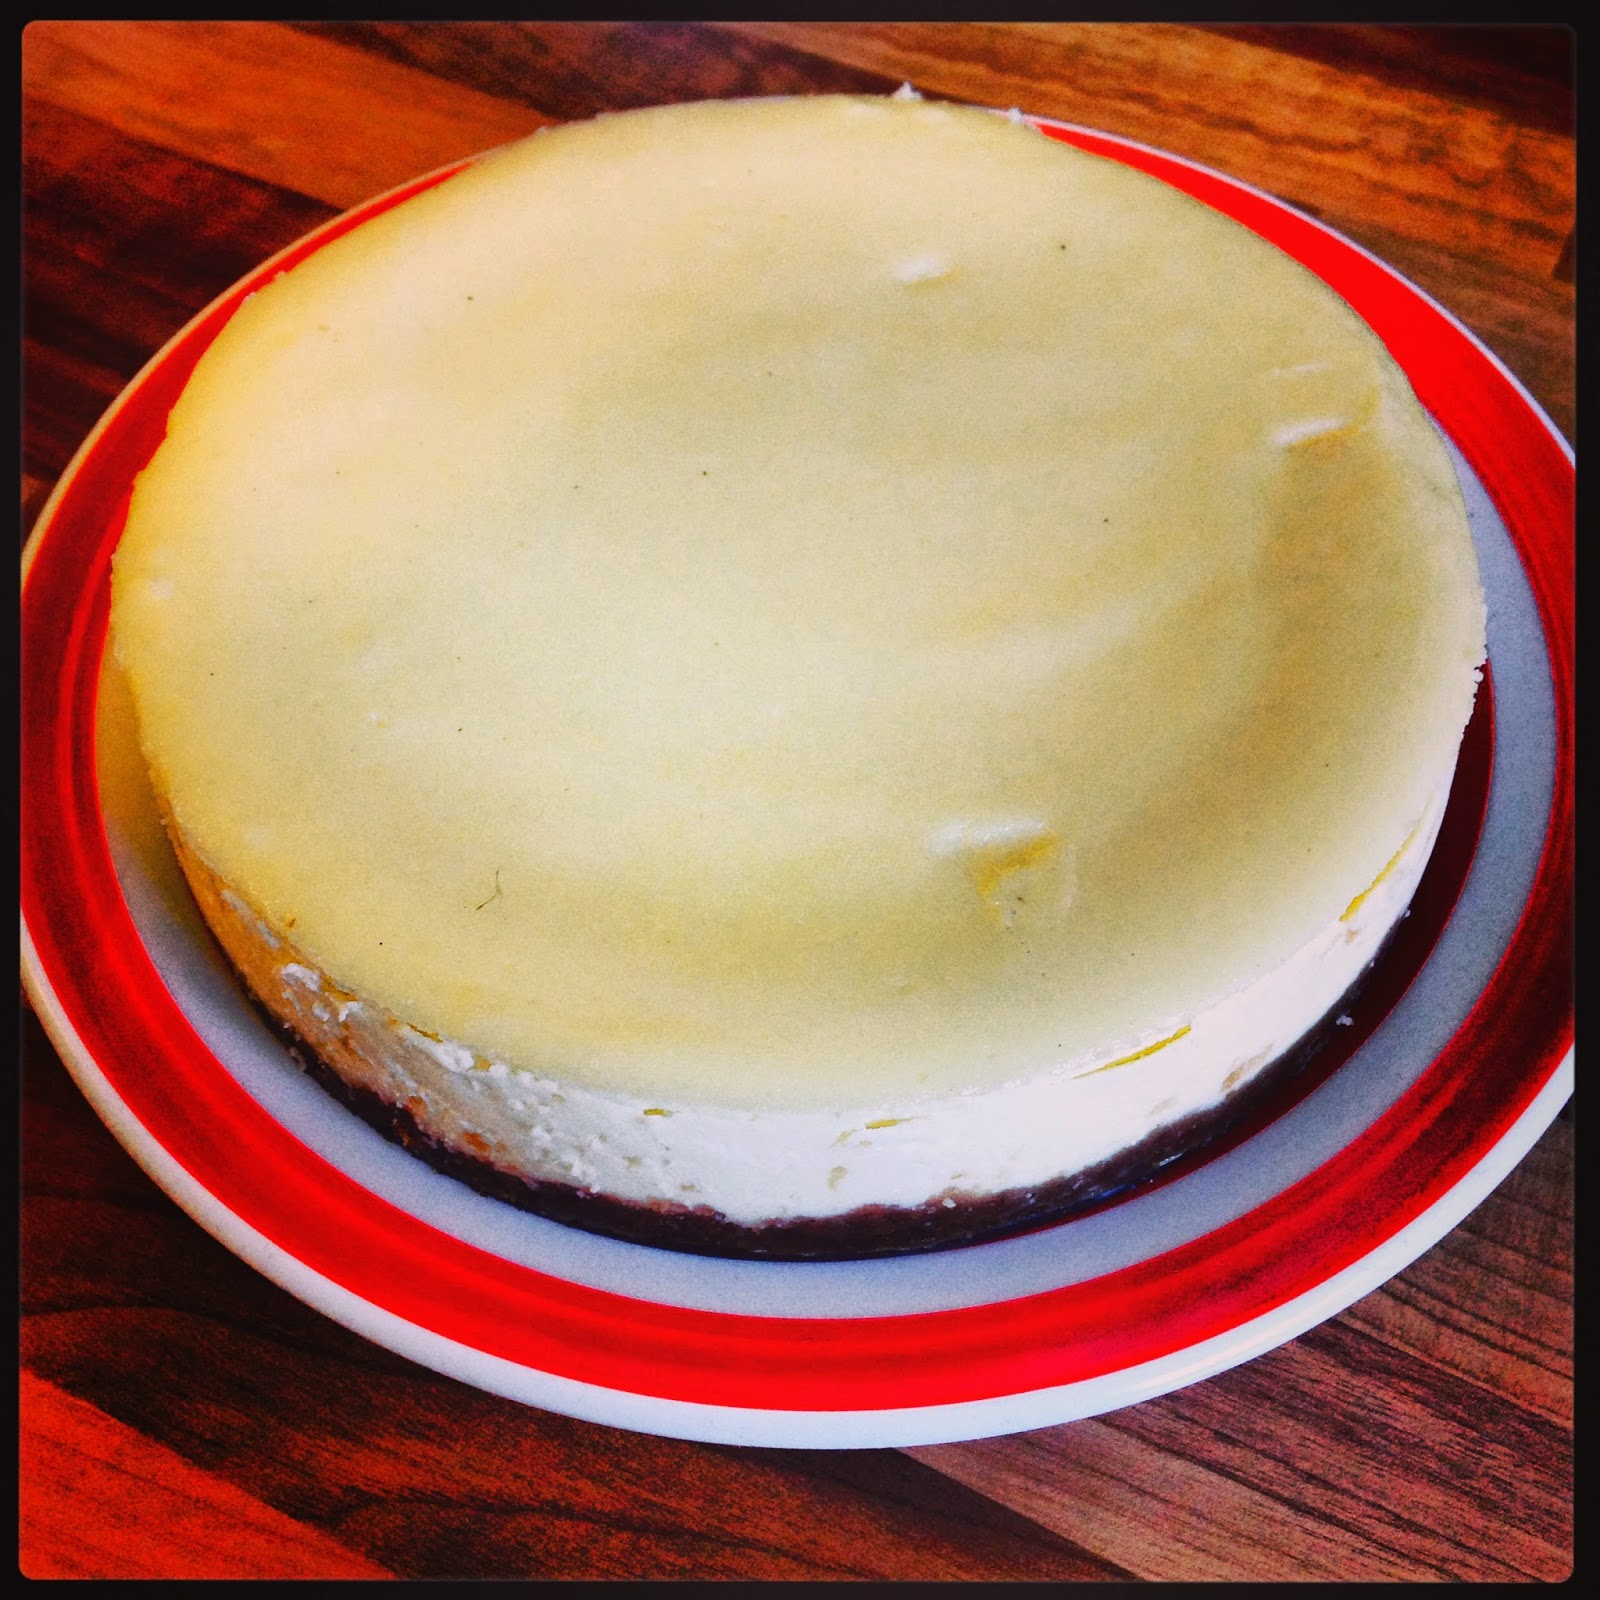 Vanilla Cheesecake, How You Doin'?